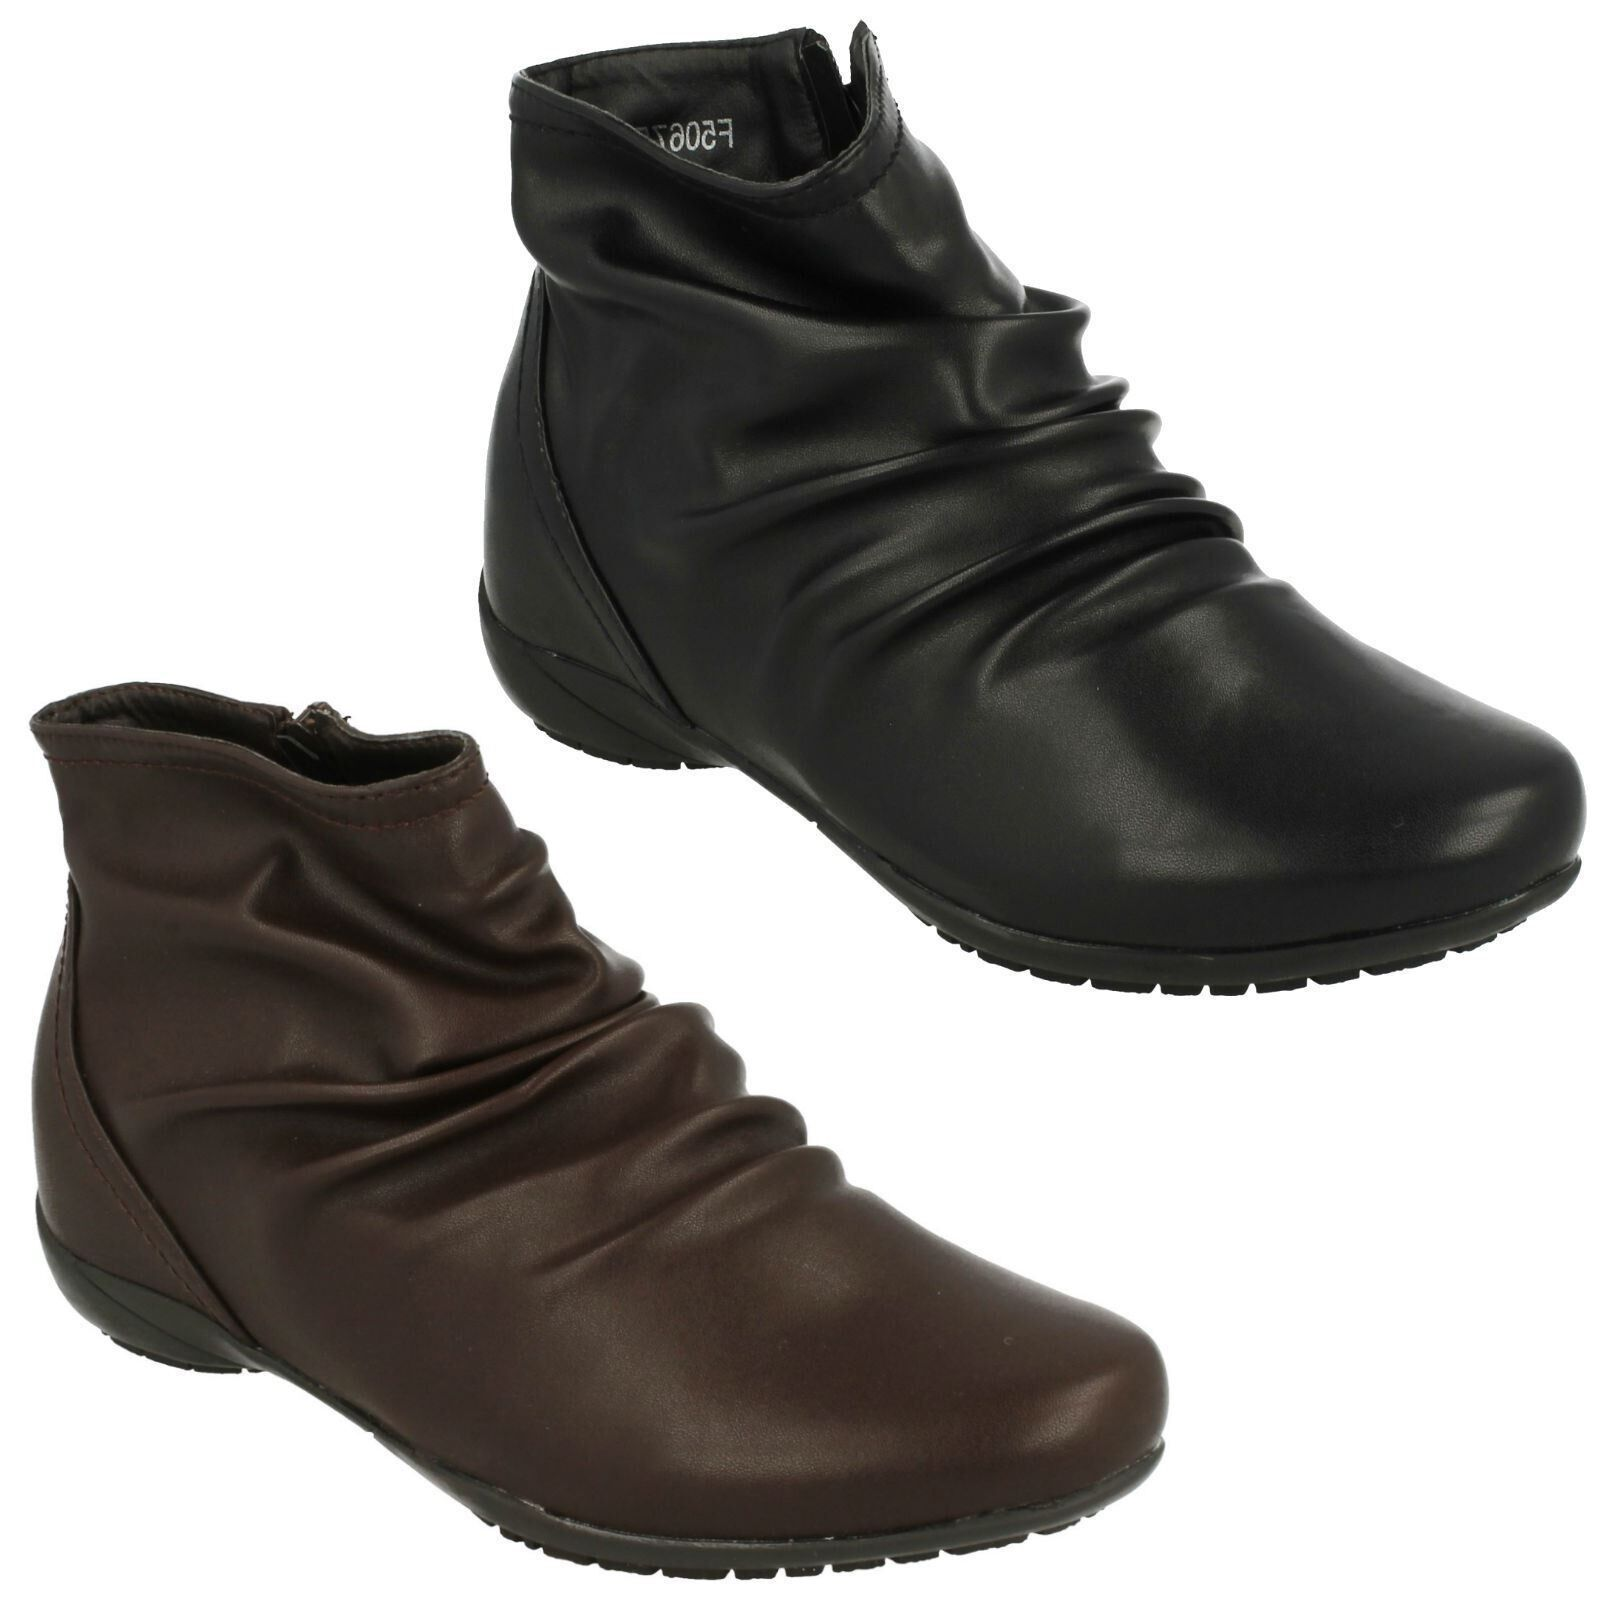 F50675 LADIES DOWN TO EARTH CASUAL WINTER ROUCHED FLAT ANKLE BOOTS ZIP UP SHOES